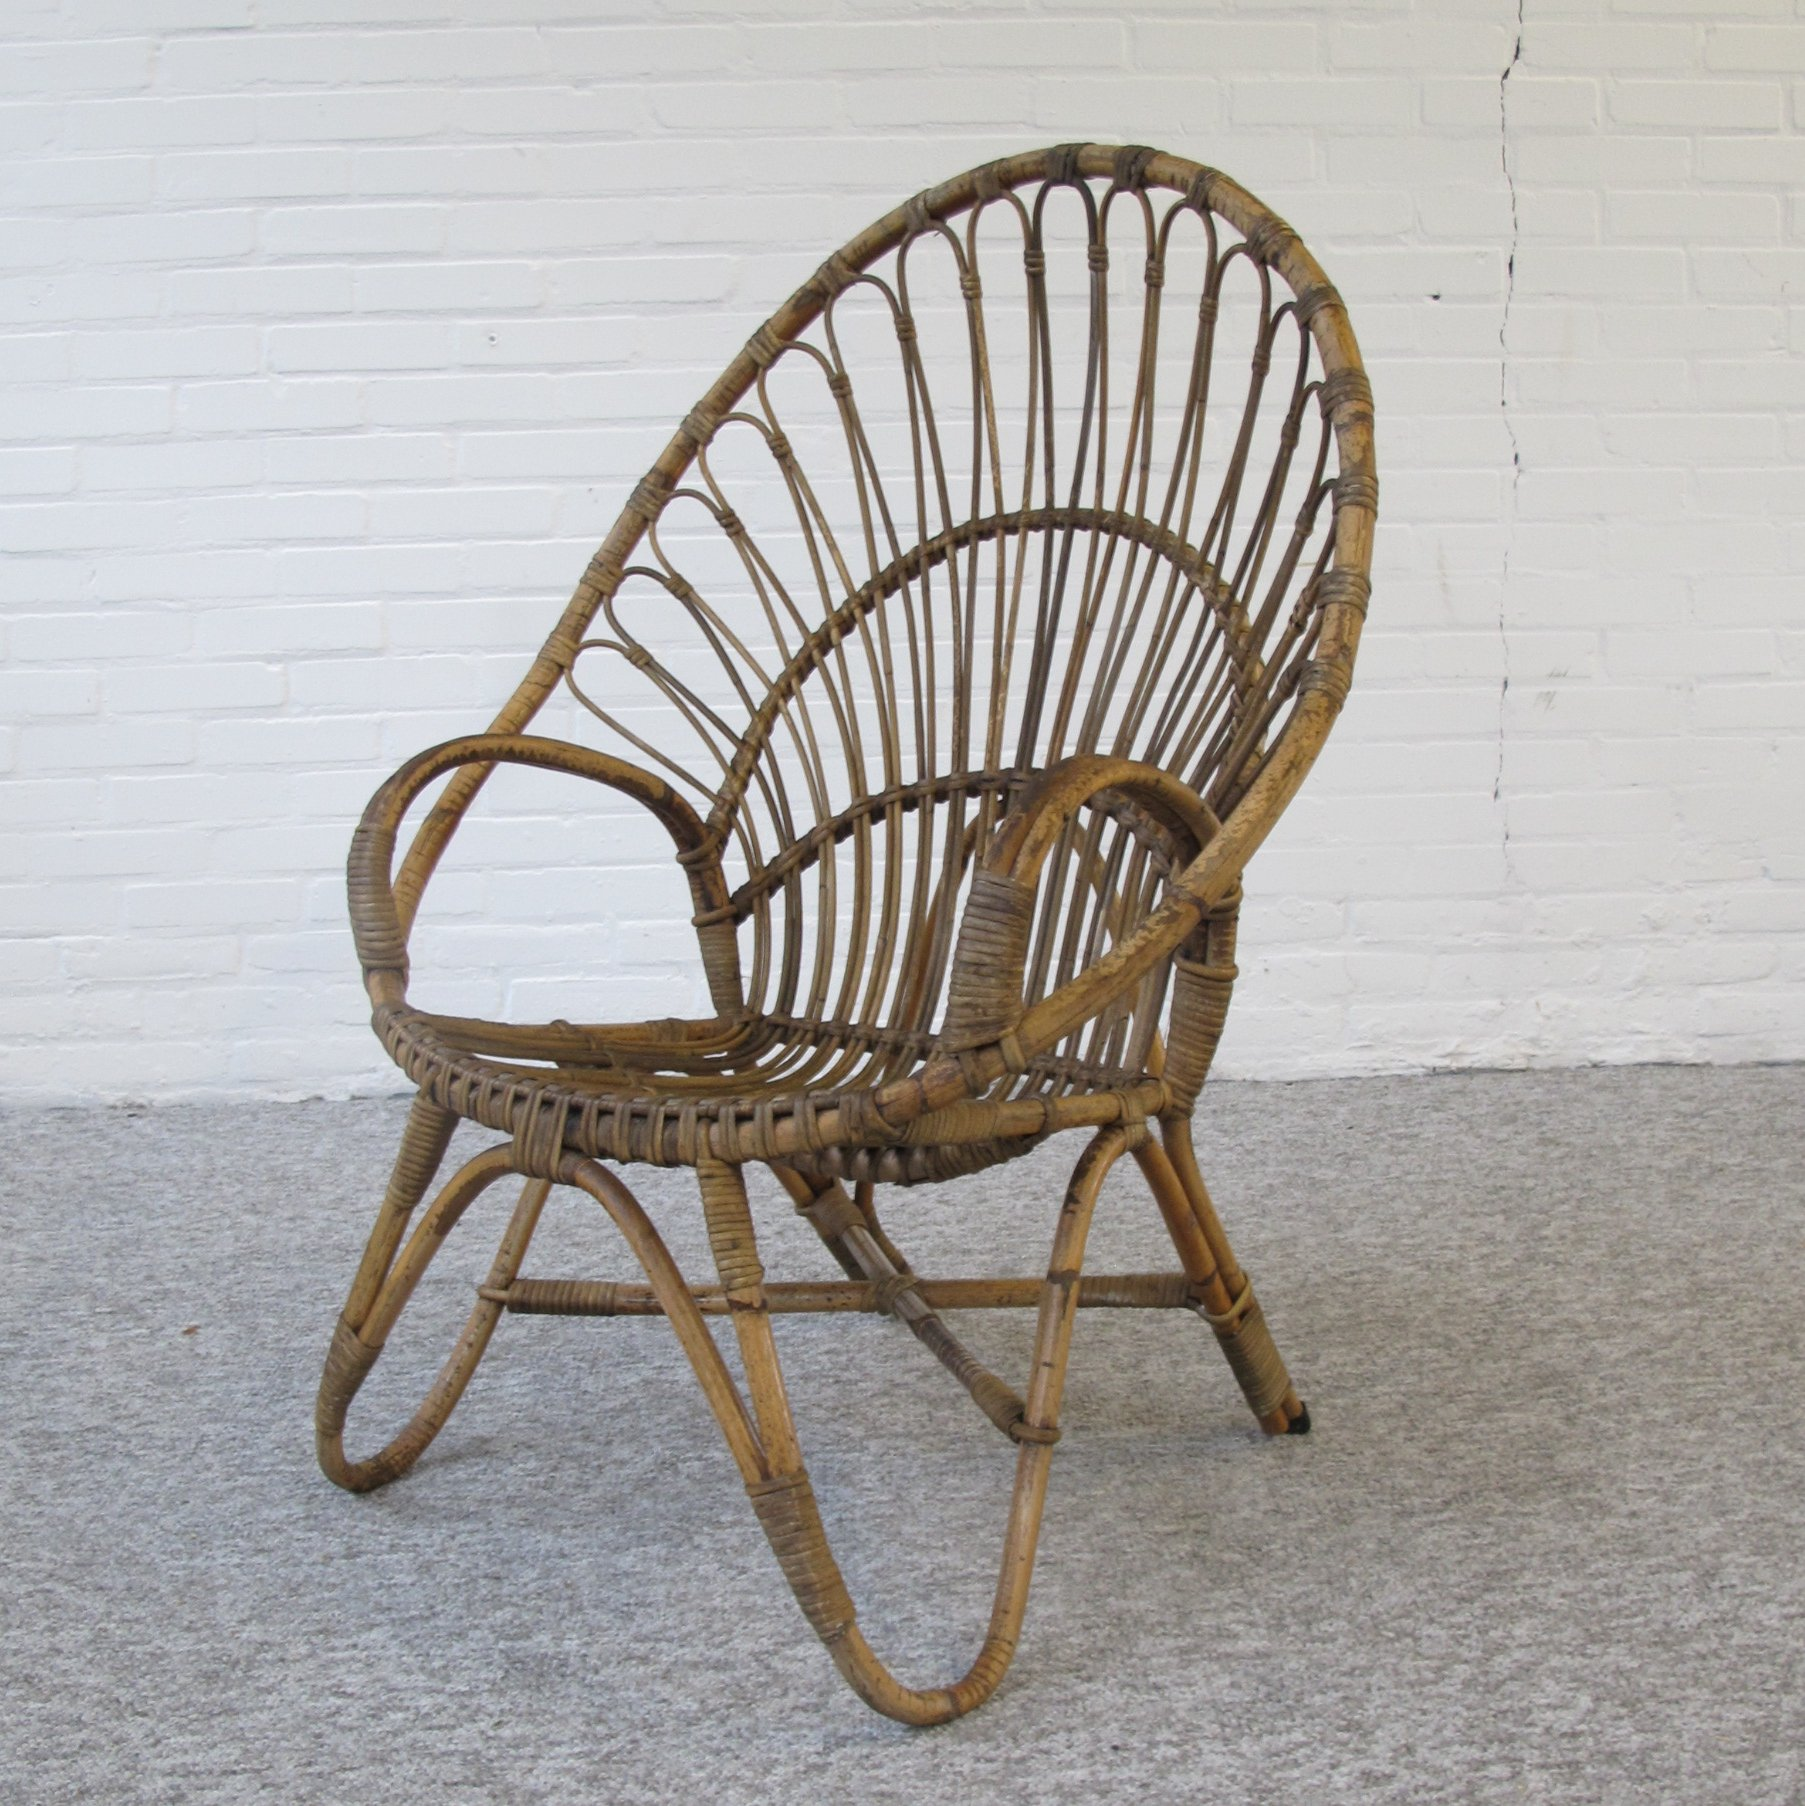 Italian High Back Vintage Rattan Chair, 1960s